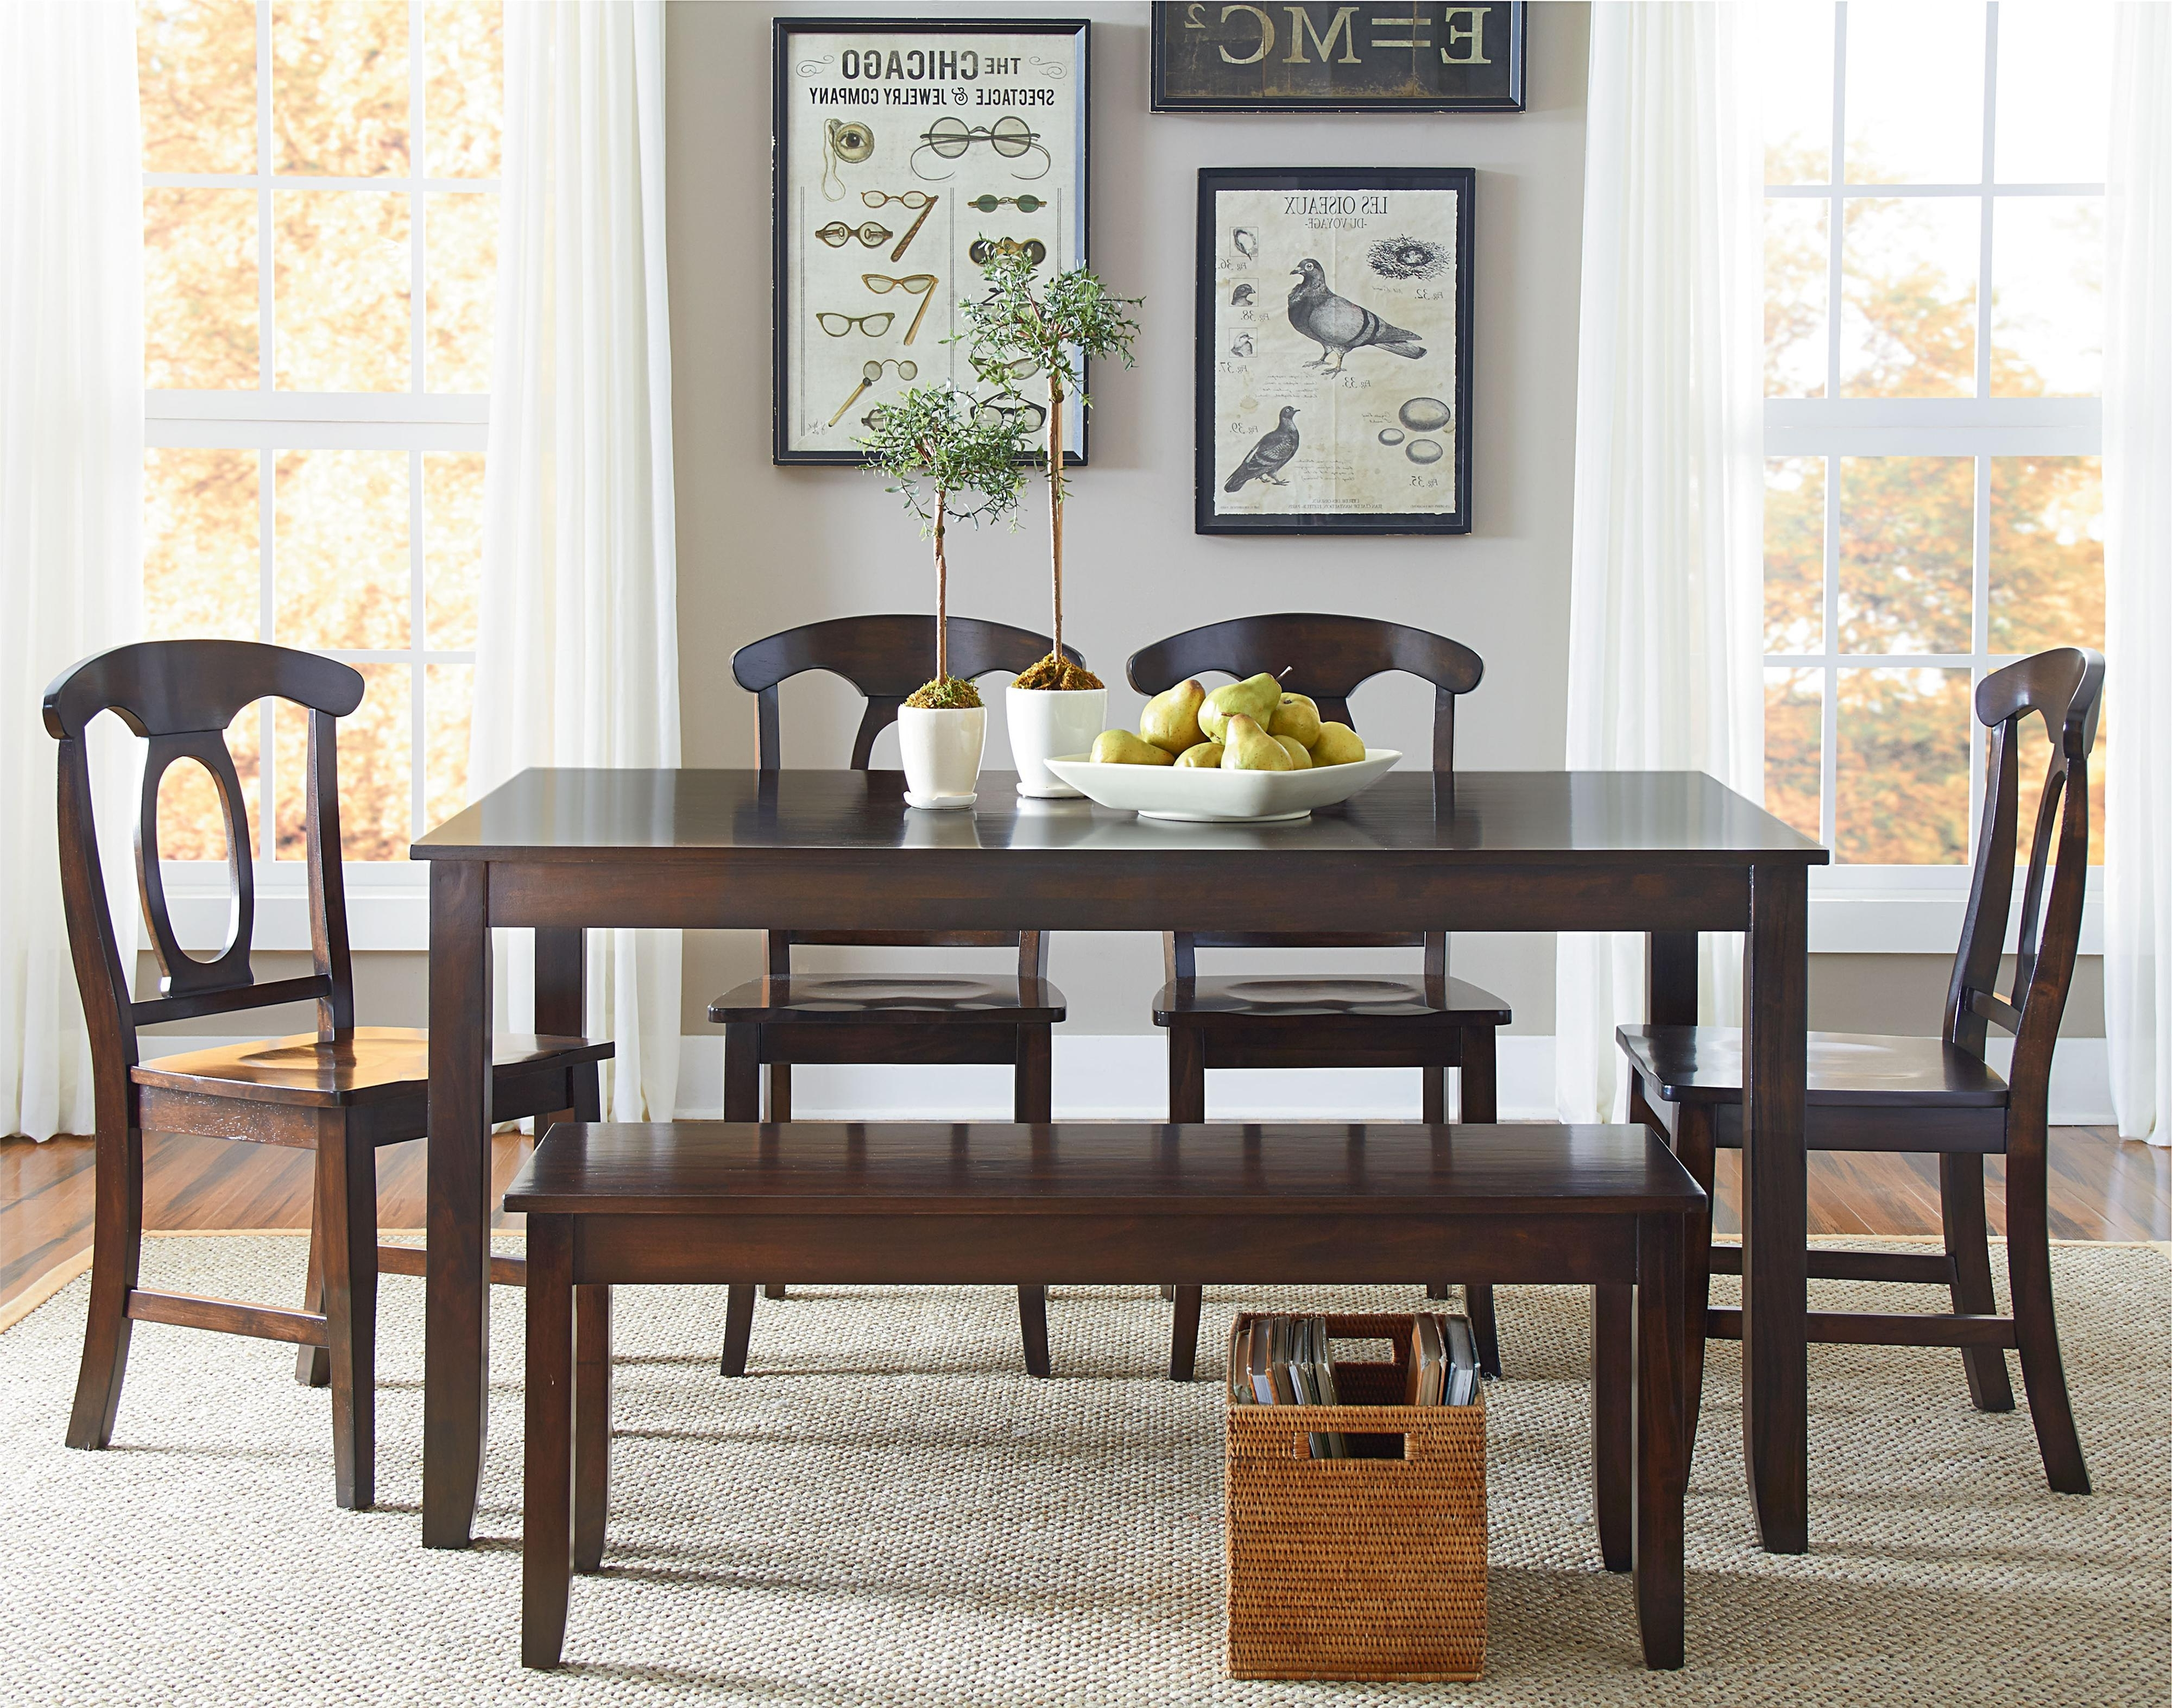 Newest Standard Furniture Larkin 6 Piece Dining Table Set With Open Oval With Regard To Cheap Dining Tables Sets (View 19 of 25)